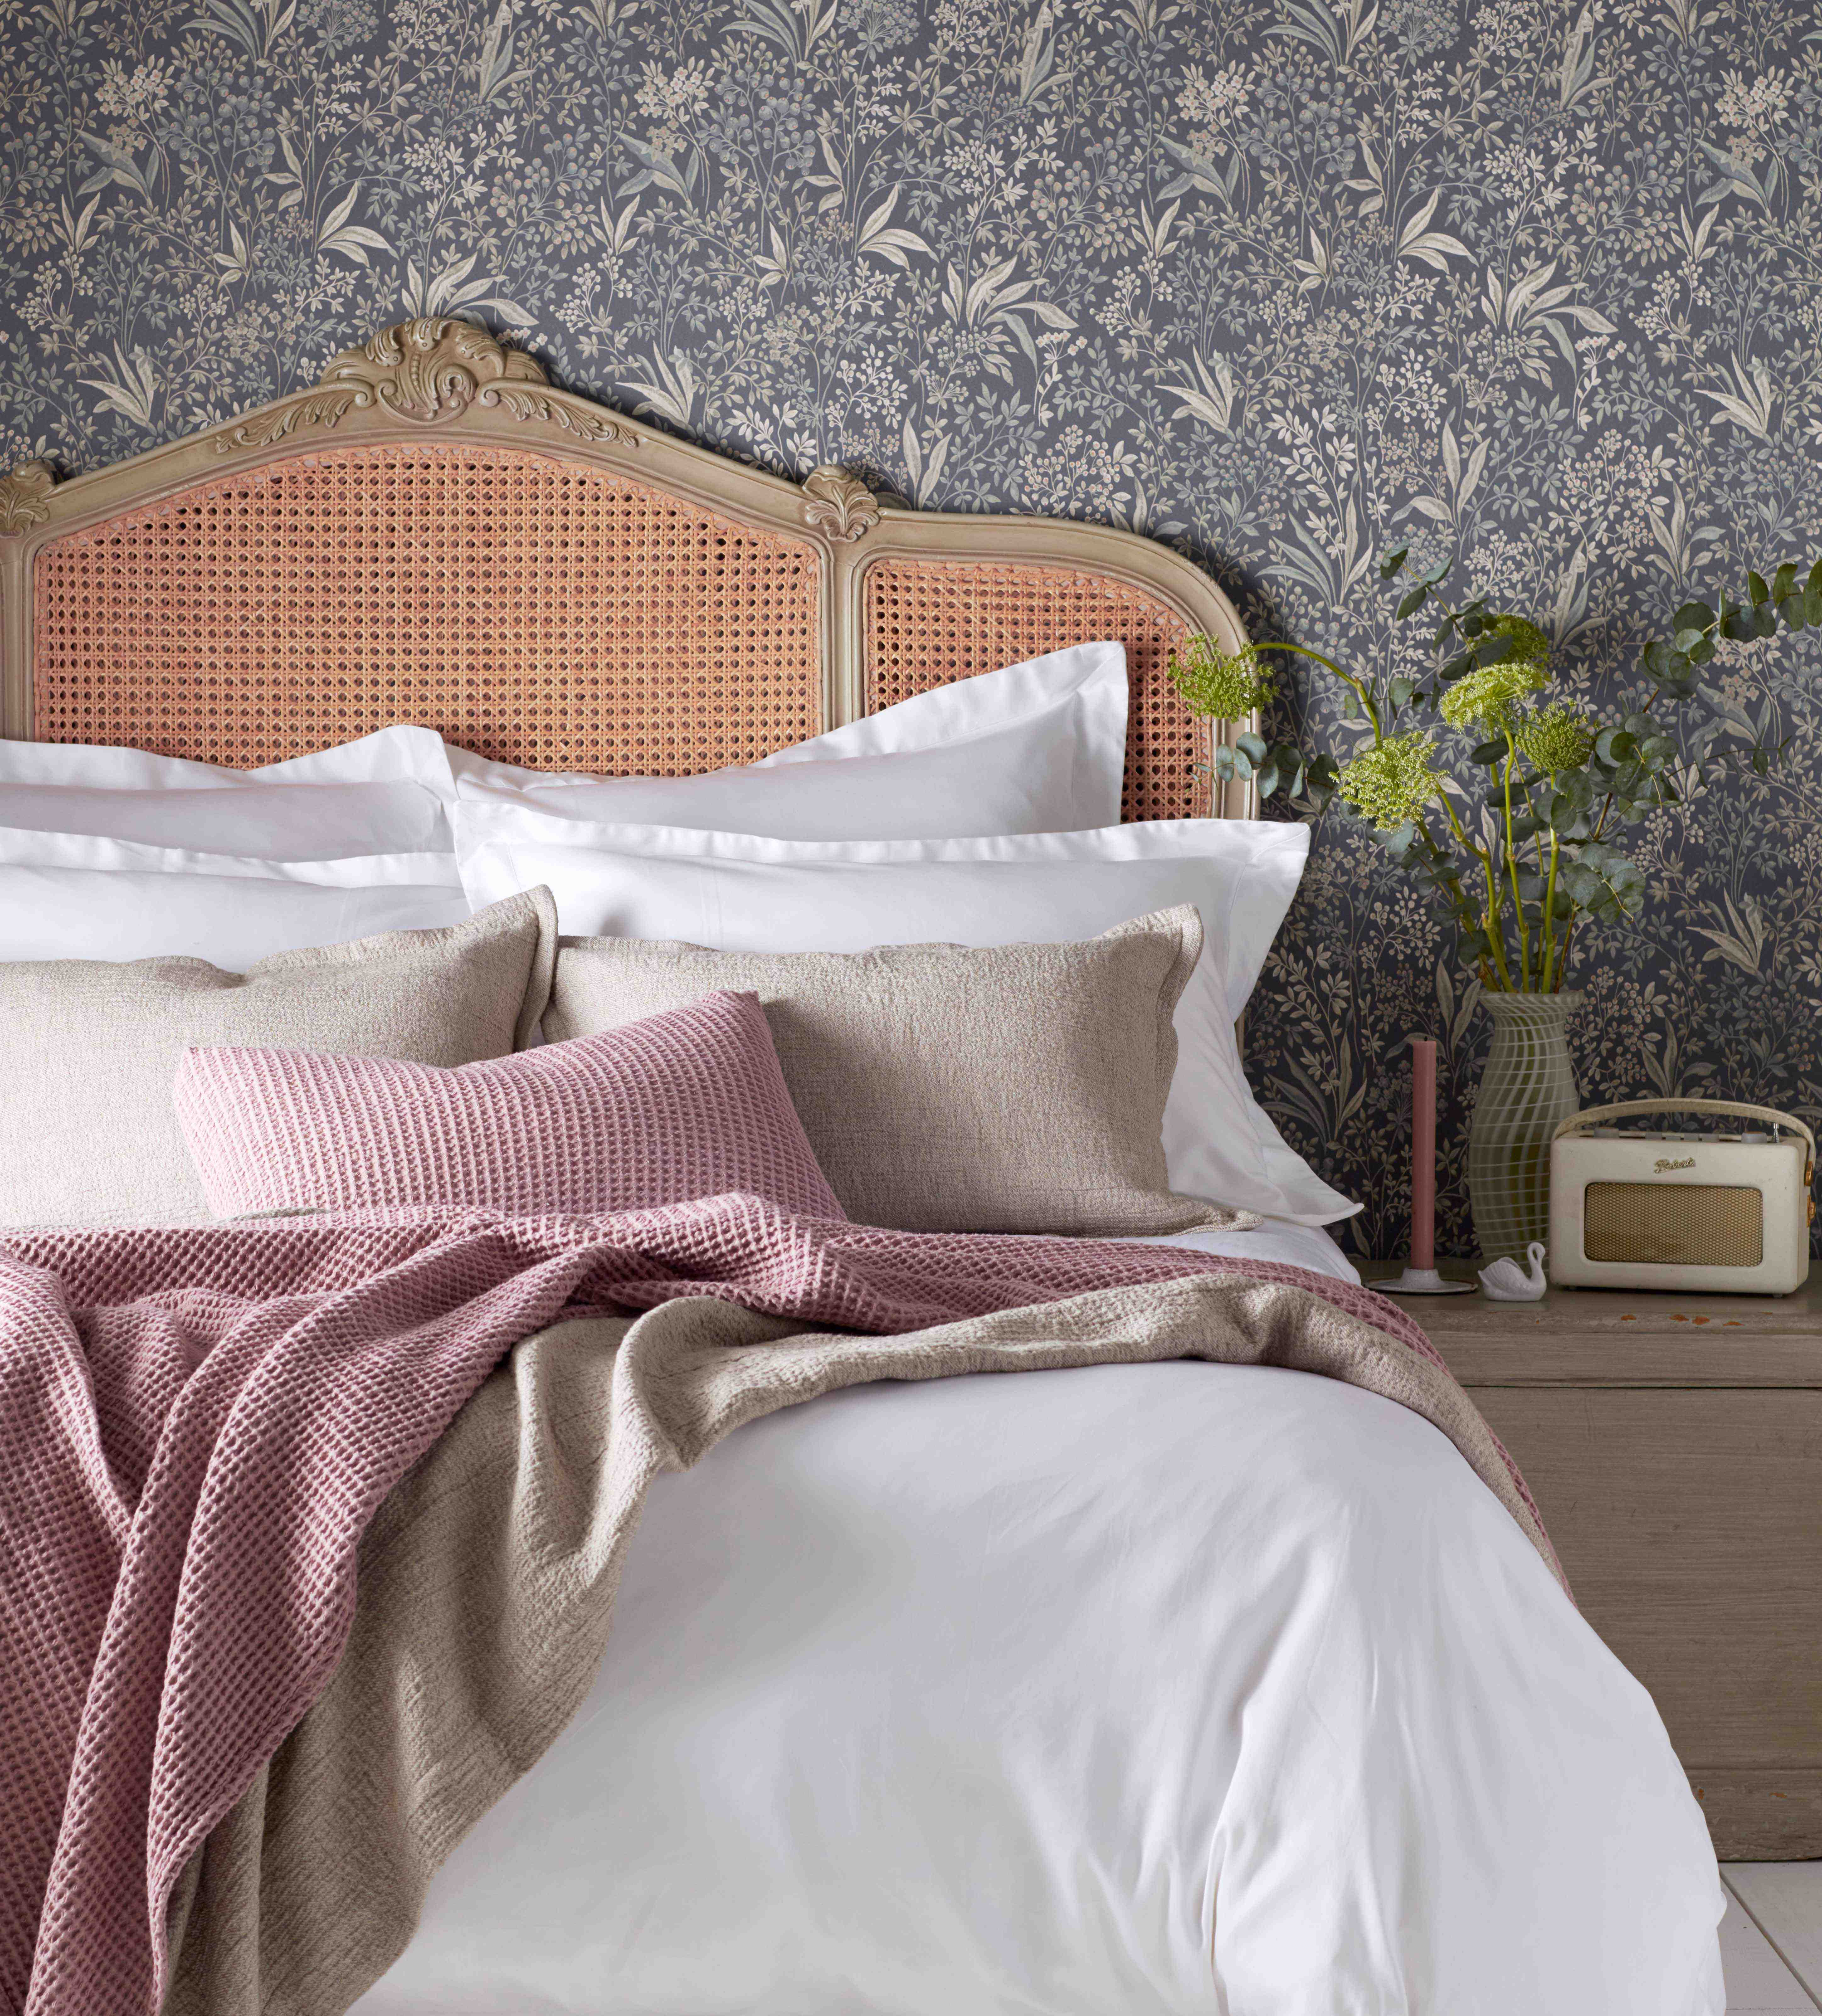 White Luxury Bedding Layered with Bedroom Accessories